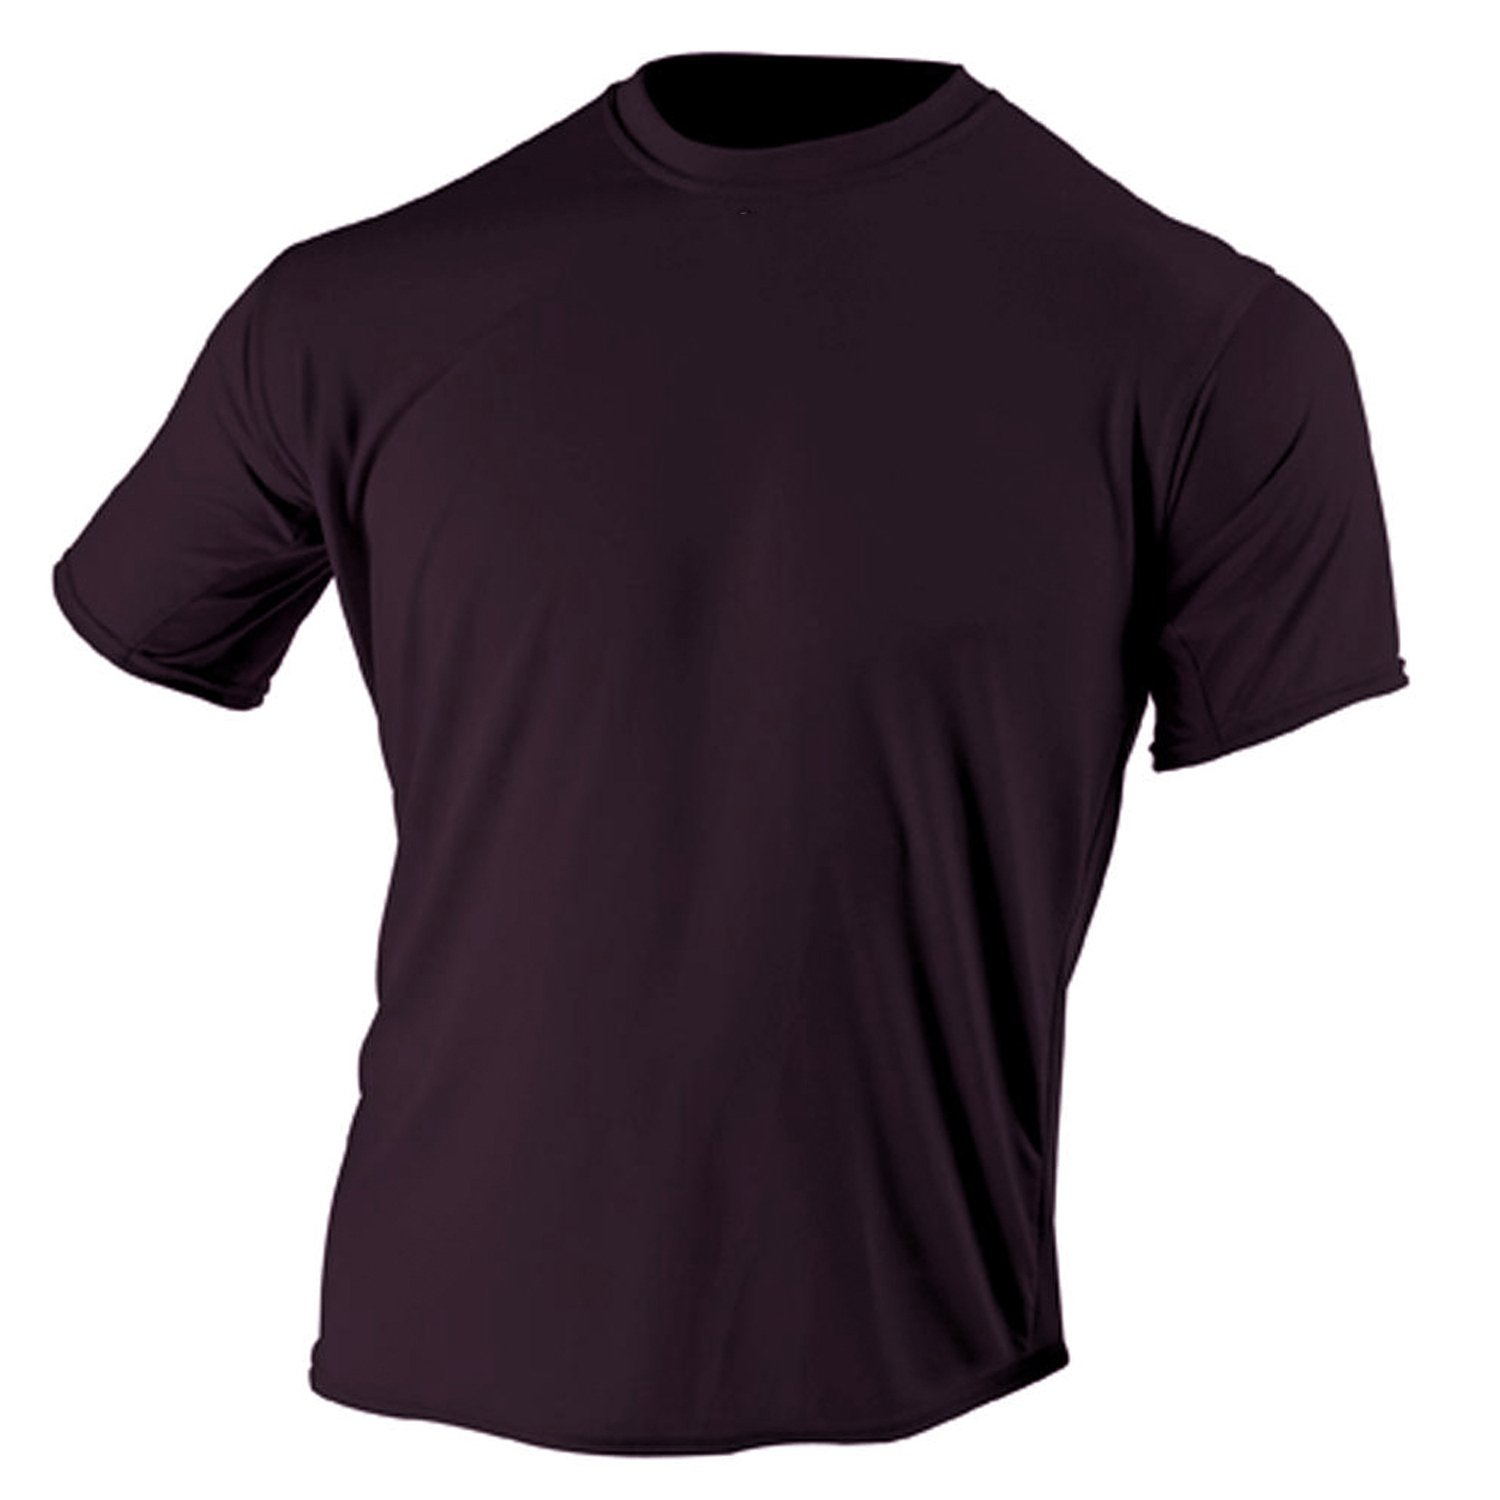 McDavid 905T Mens Half Sleeve Referee Cut Crew T Shirt Maroon XX-Large [Misc.]